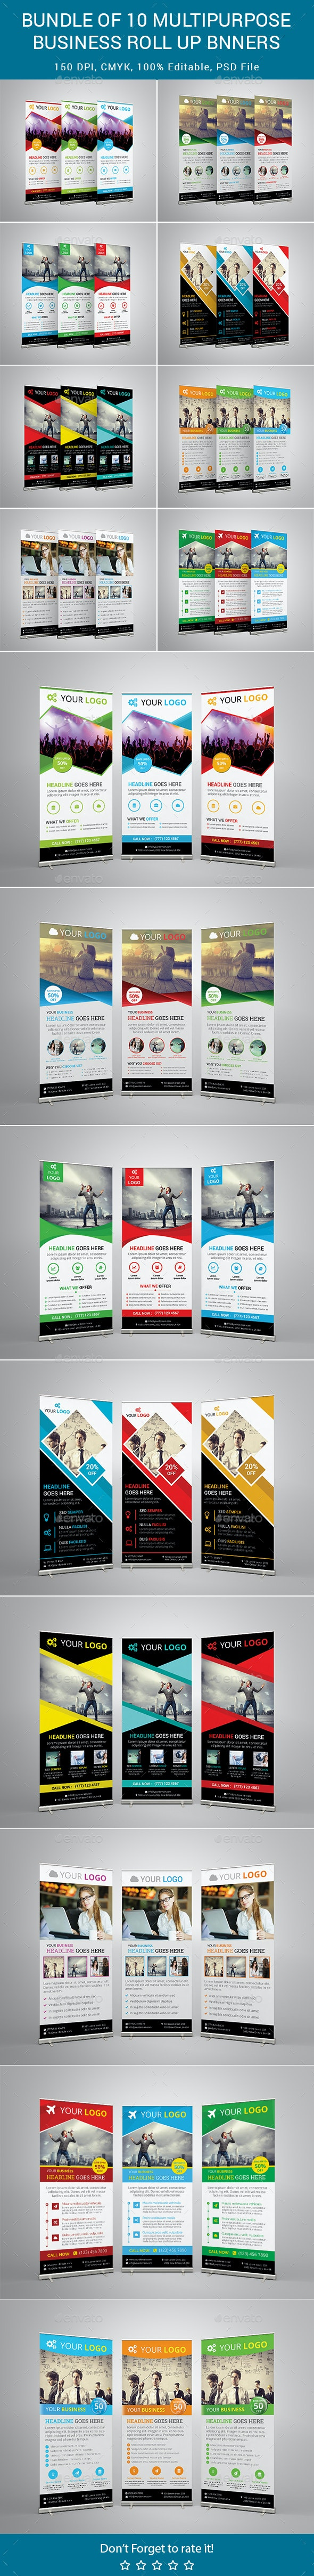 Bundle of 8 Multipurpose Business Rollup Banners - Signage Print Templates